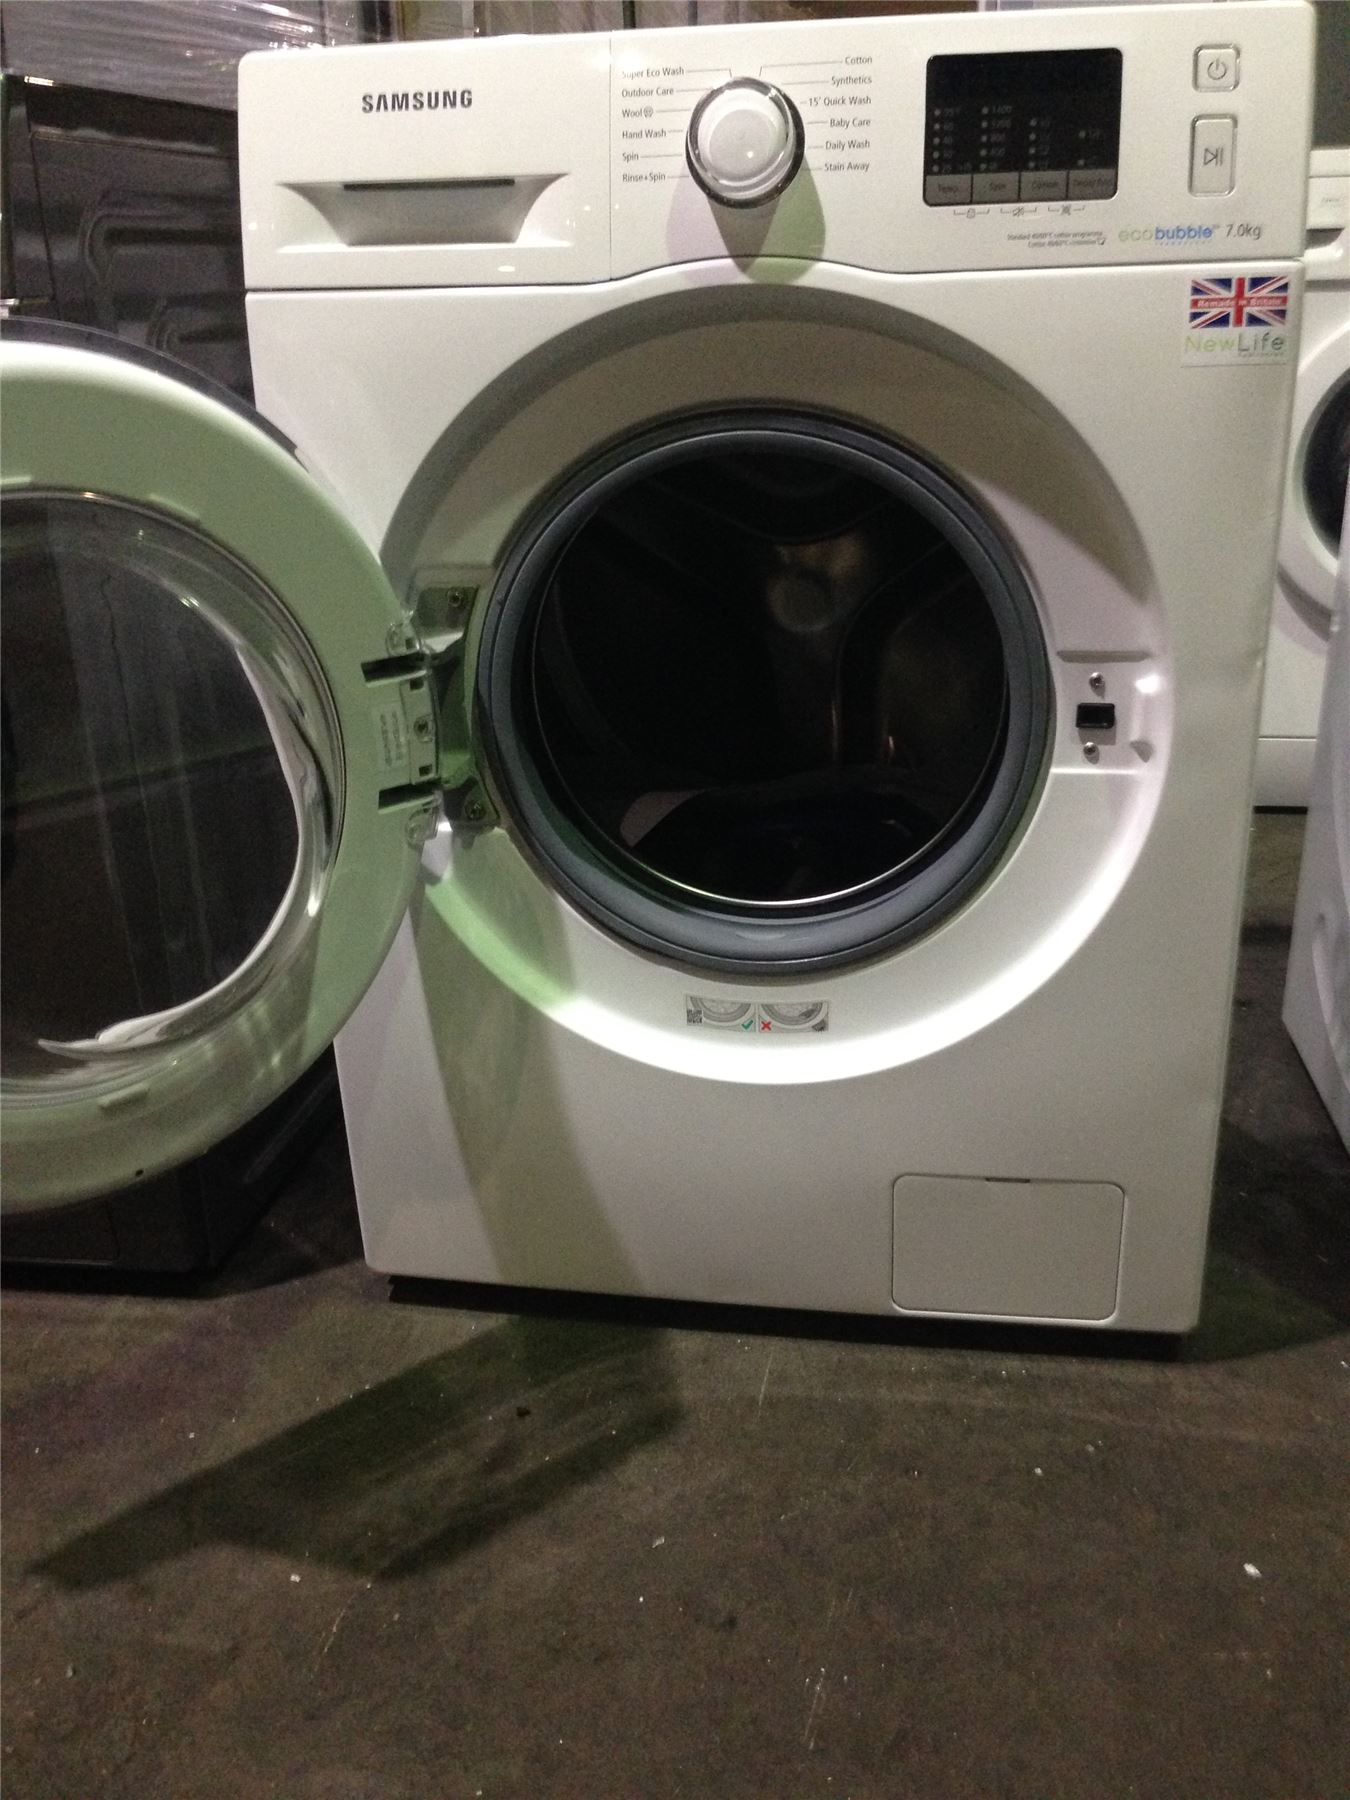 527041 p samsung eco bubble 7kg washing machine wf70f5e2w4w white ebay. Black Bedroom Furniture Sets. Home Design Ideas